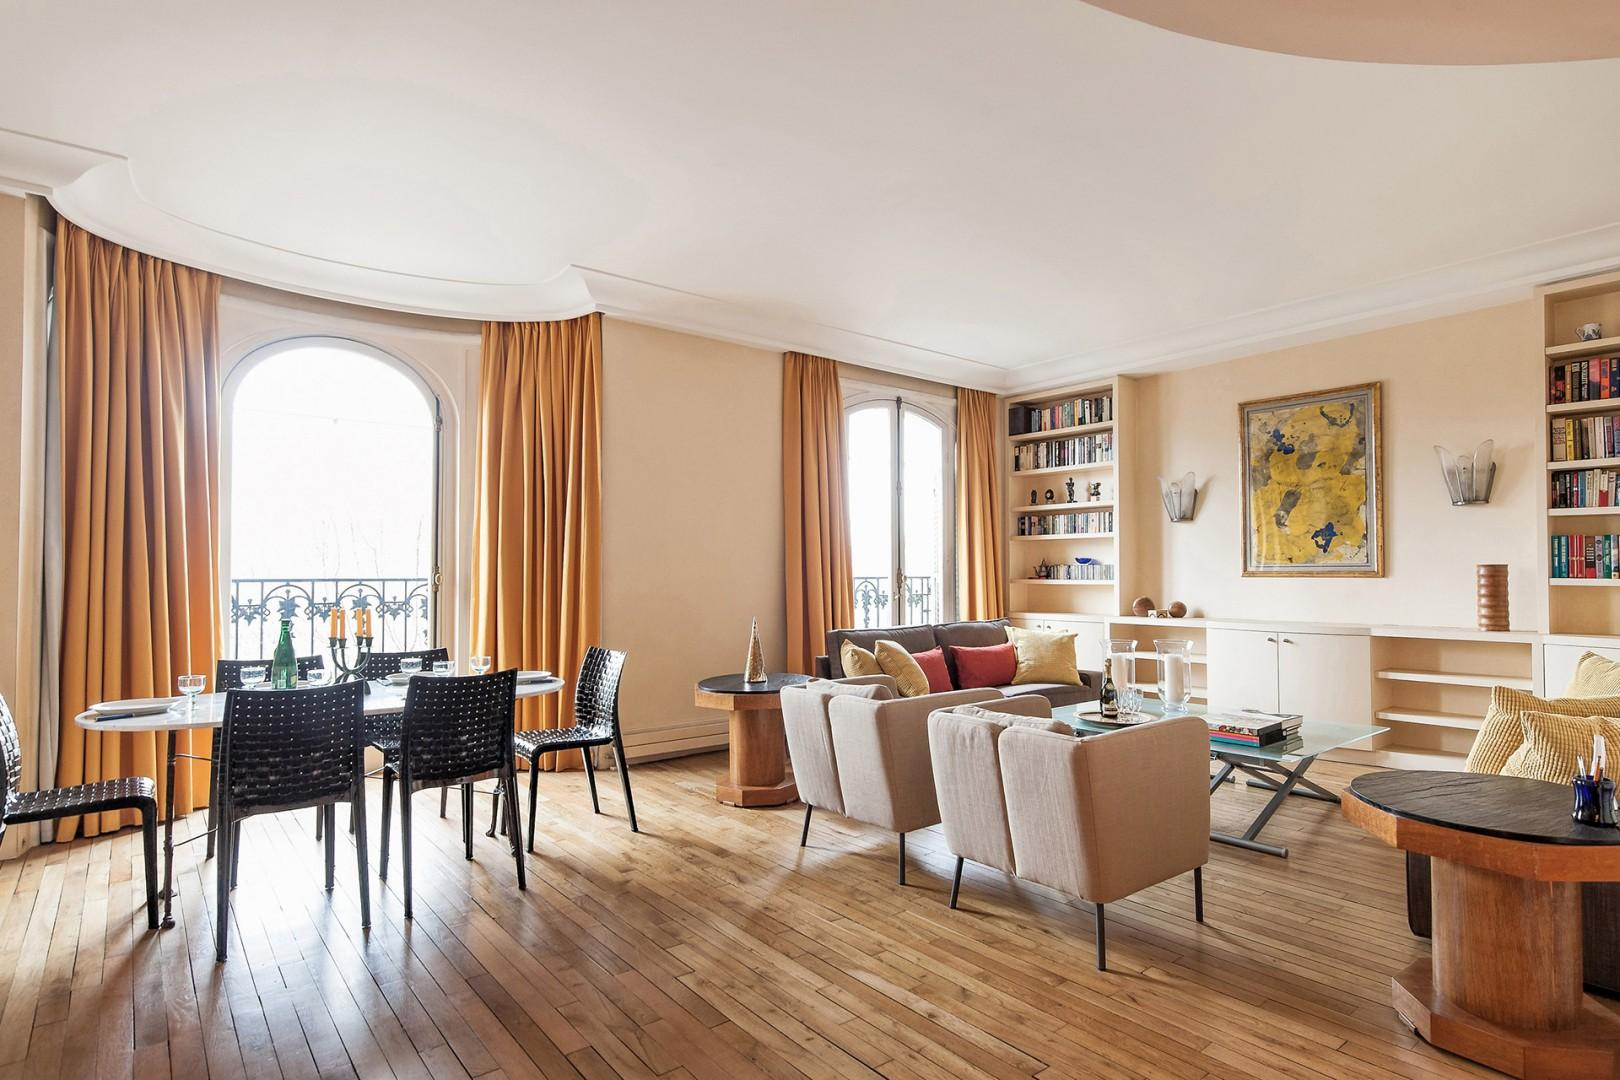 The gracious living and dining areas are brightened by picturesque arched windows.